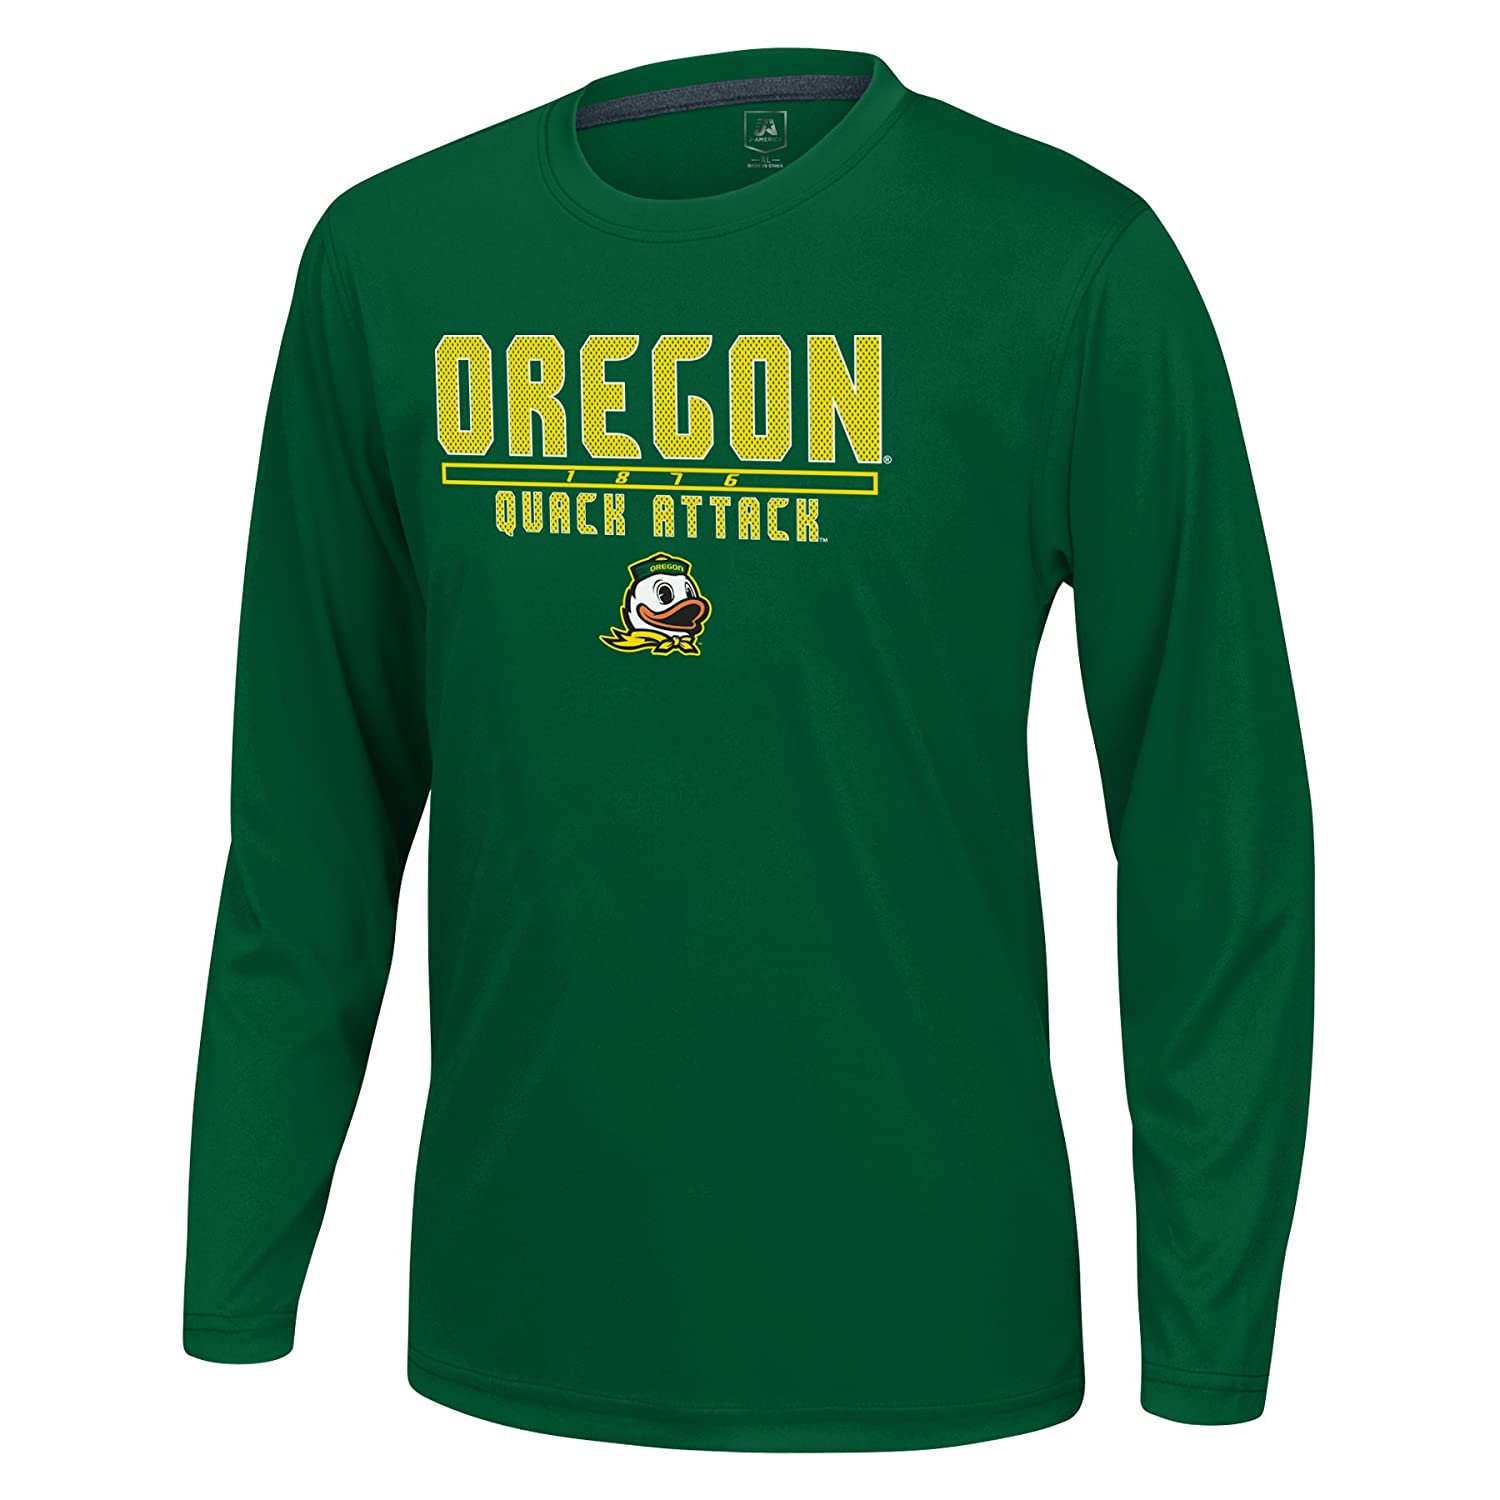 X-Large J America NCAA Oregon Ducks Boys Youth School Slogan Long Sleeve Callout Poly Tee Green